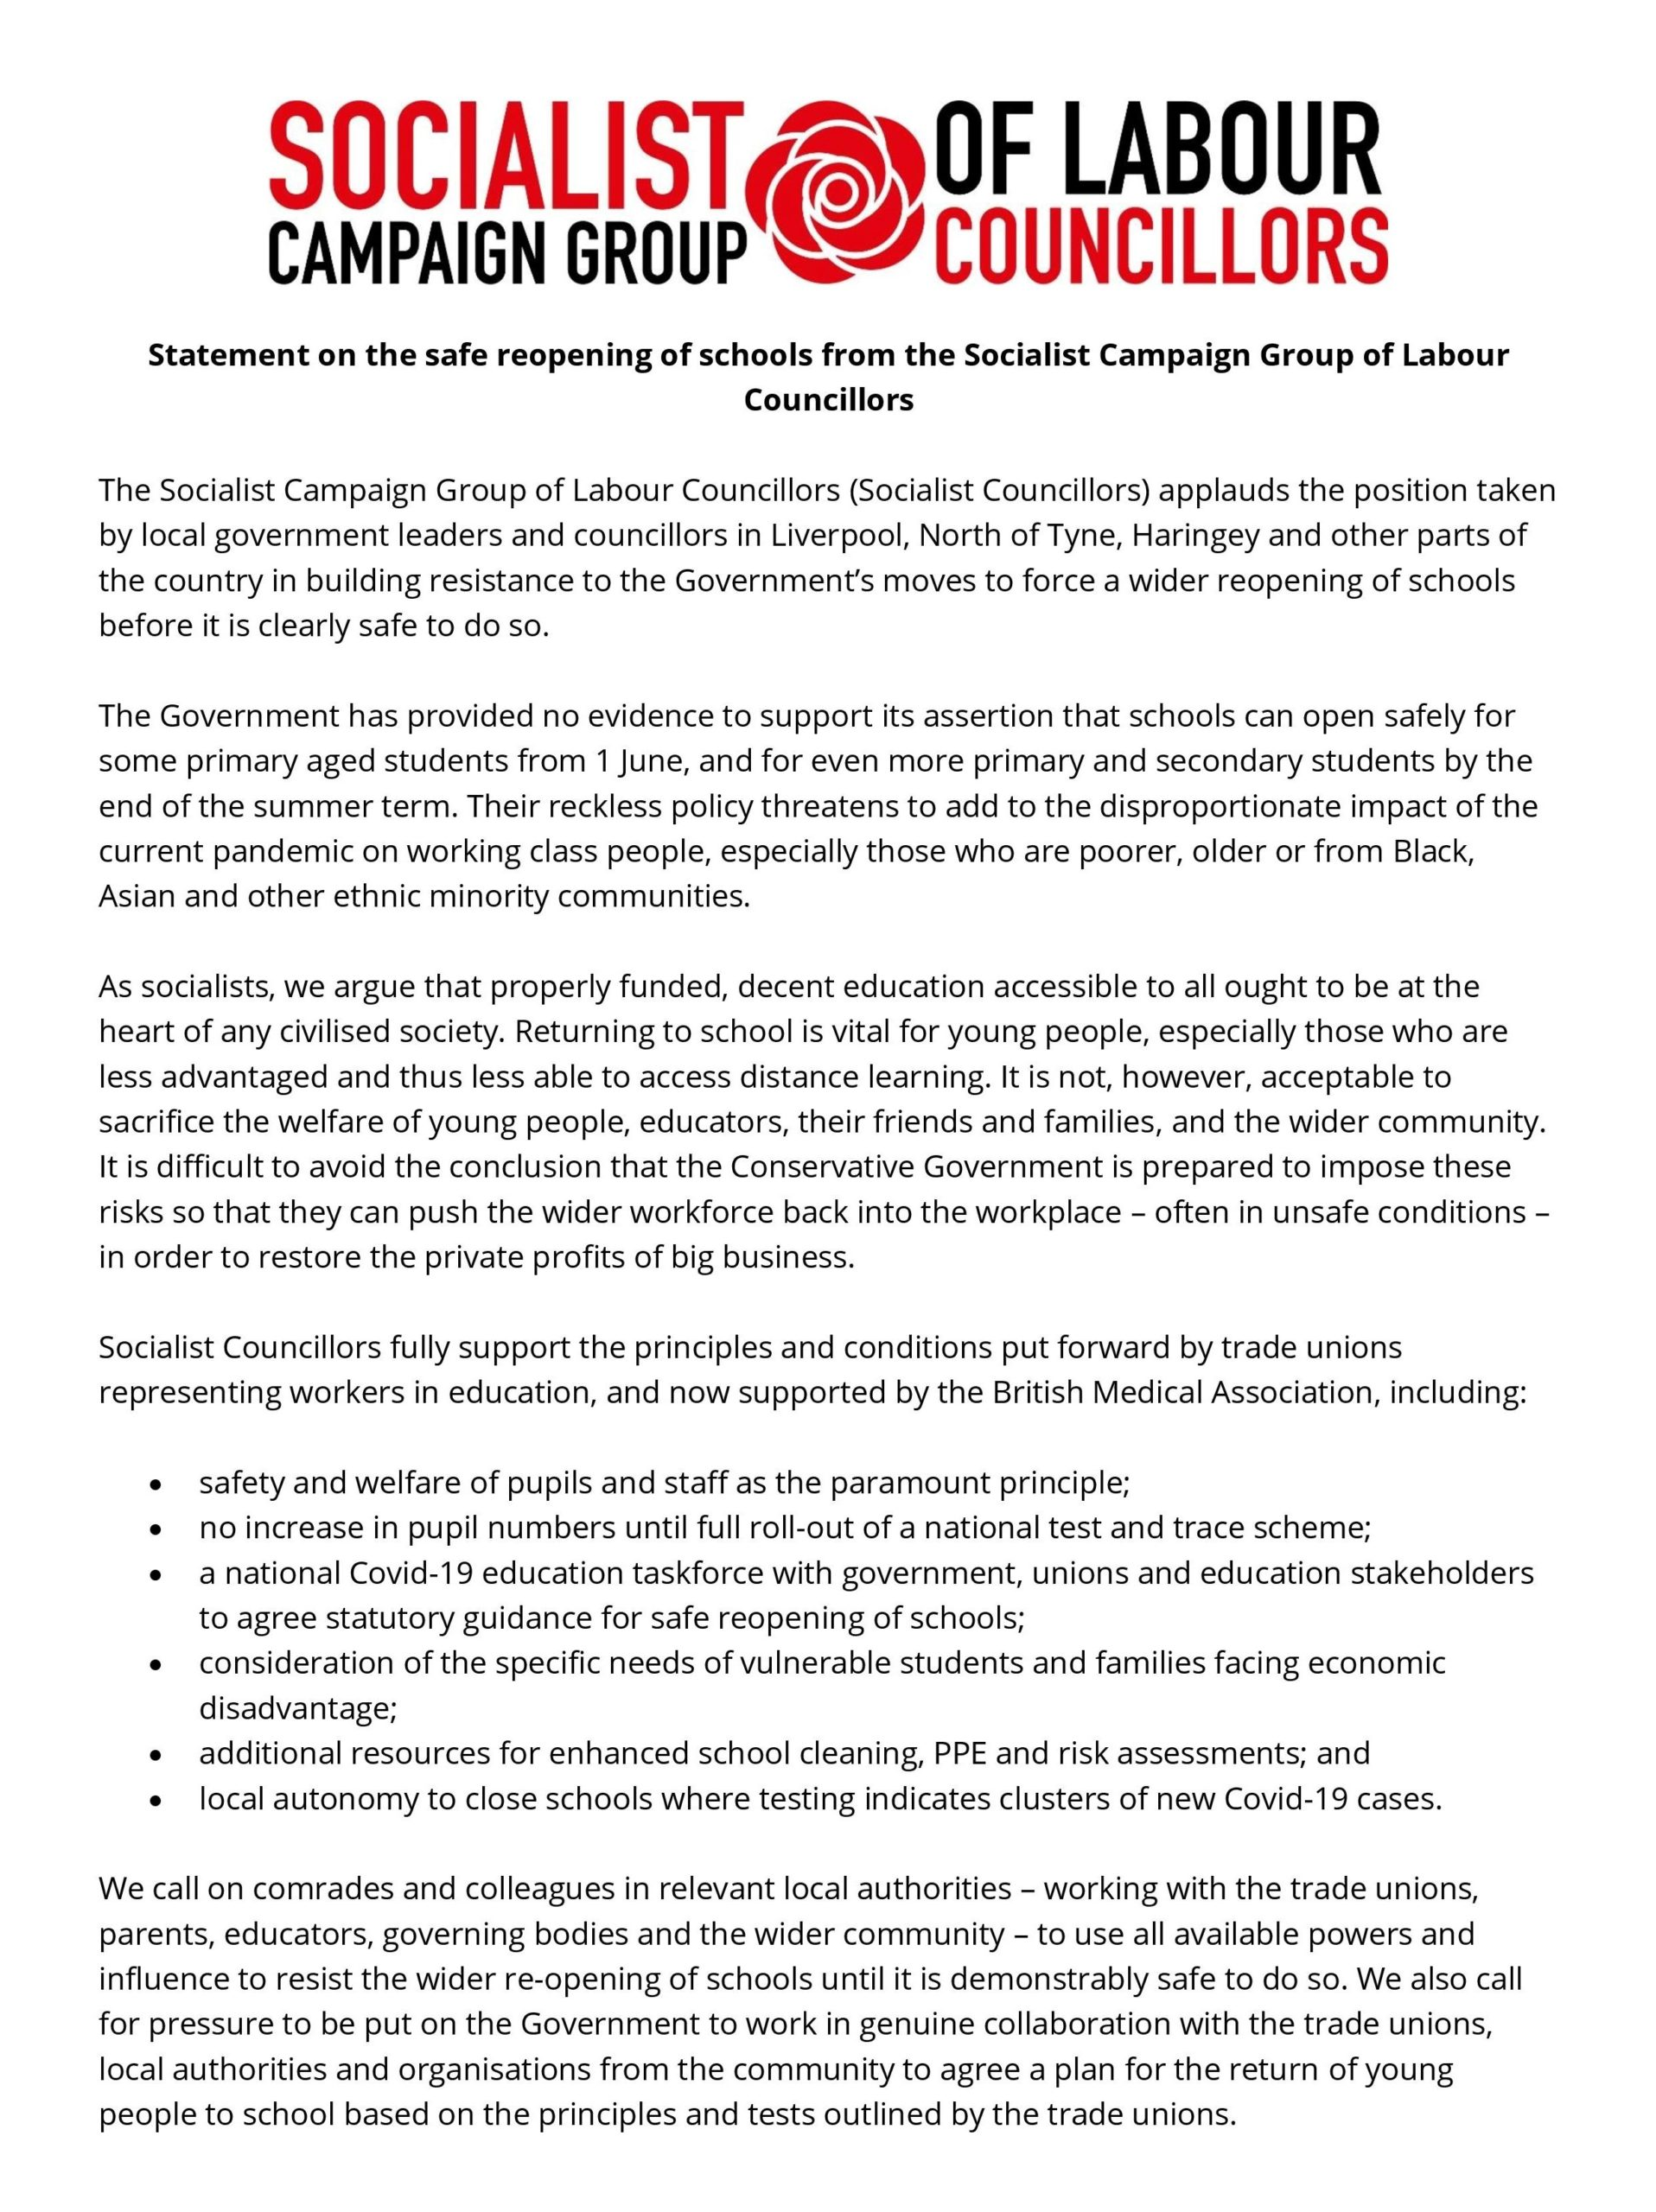 20200515 Statement on the safe reopening of schools (Socialist Councillors) CORRECTED